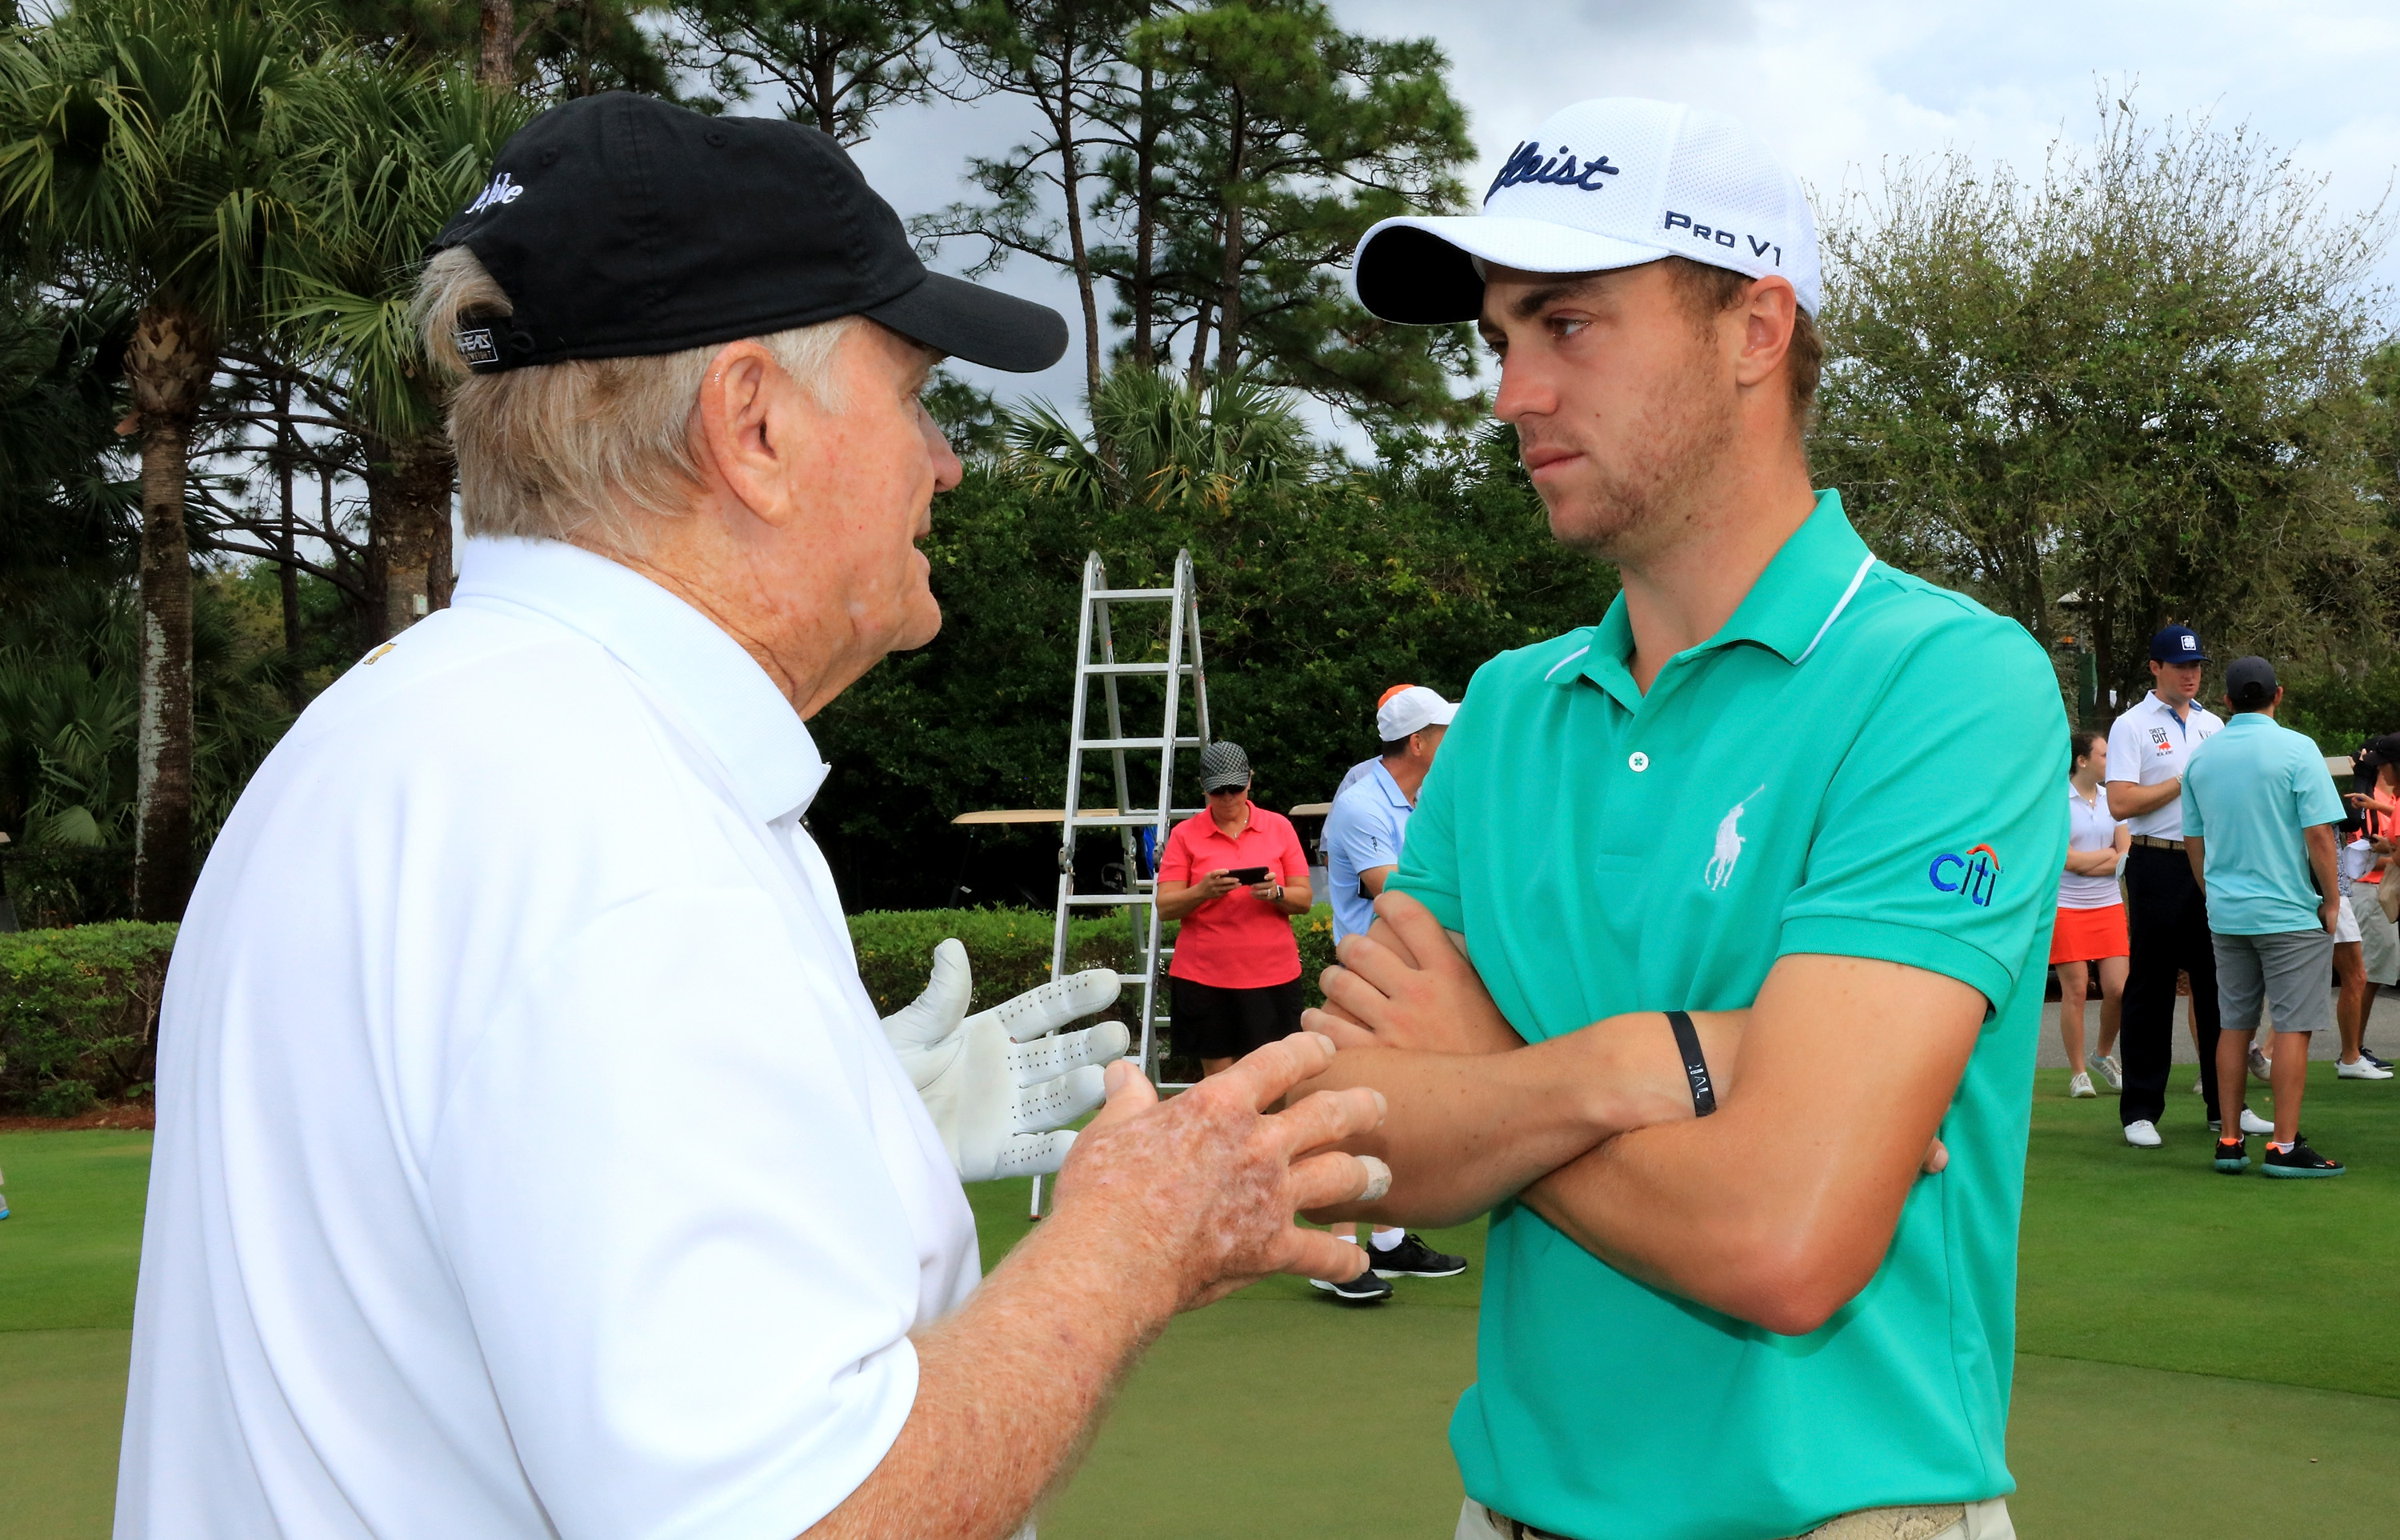 Golfers Justin Thomas and Jack Nicklaus